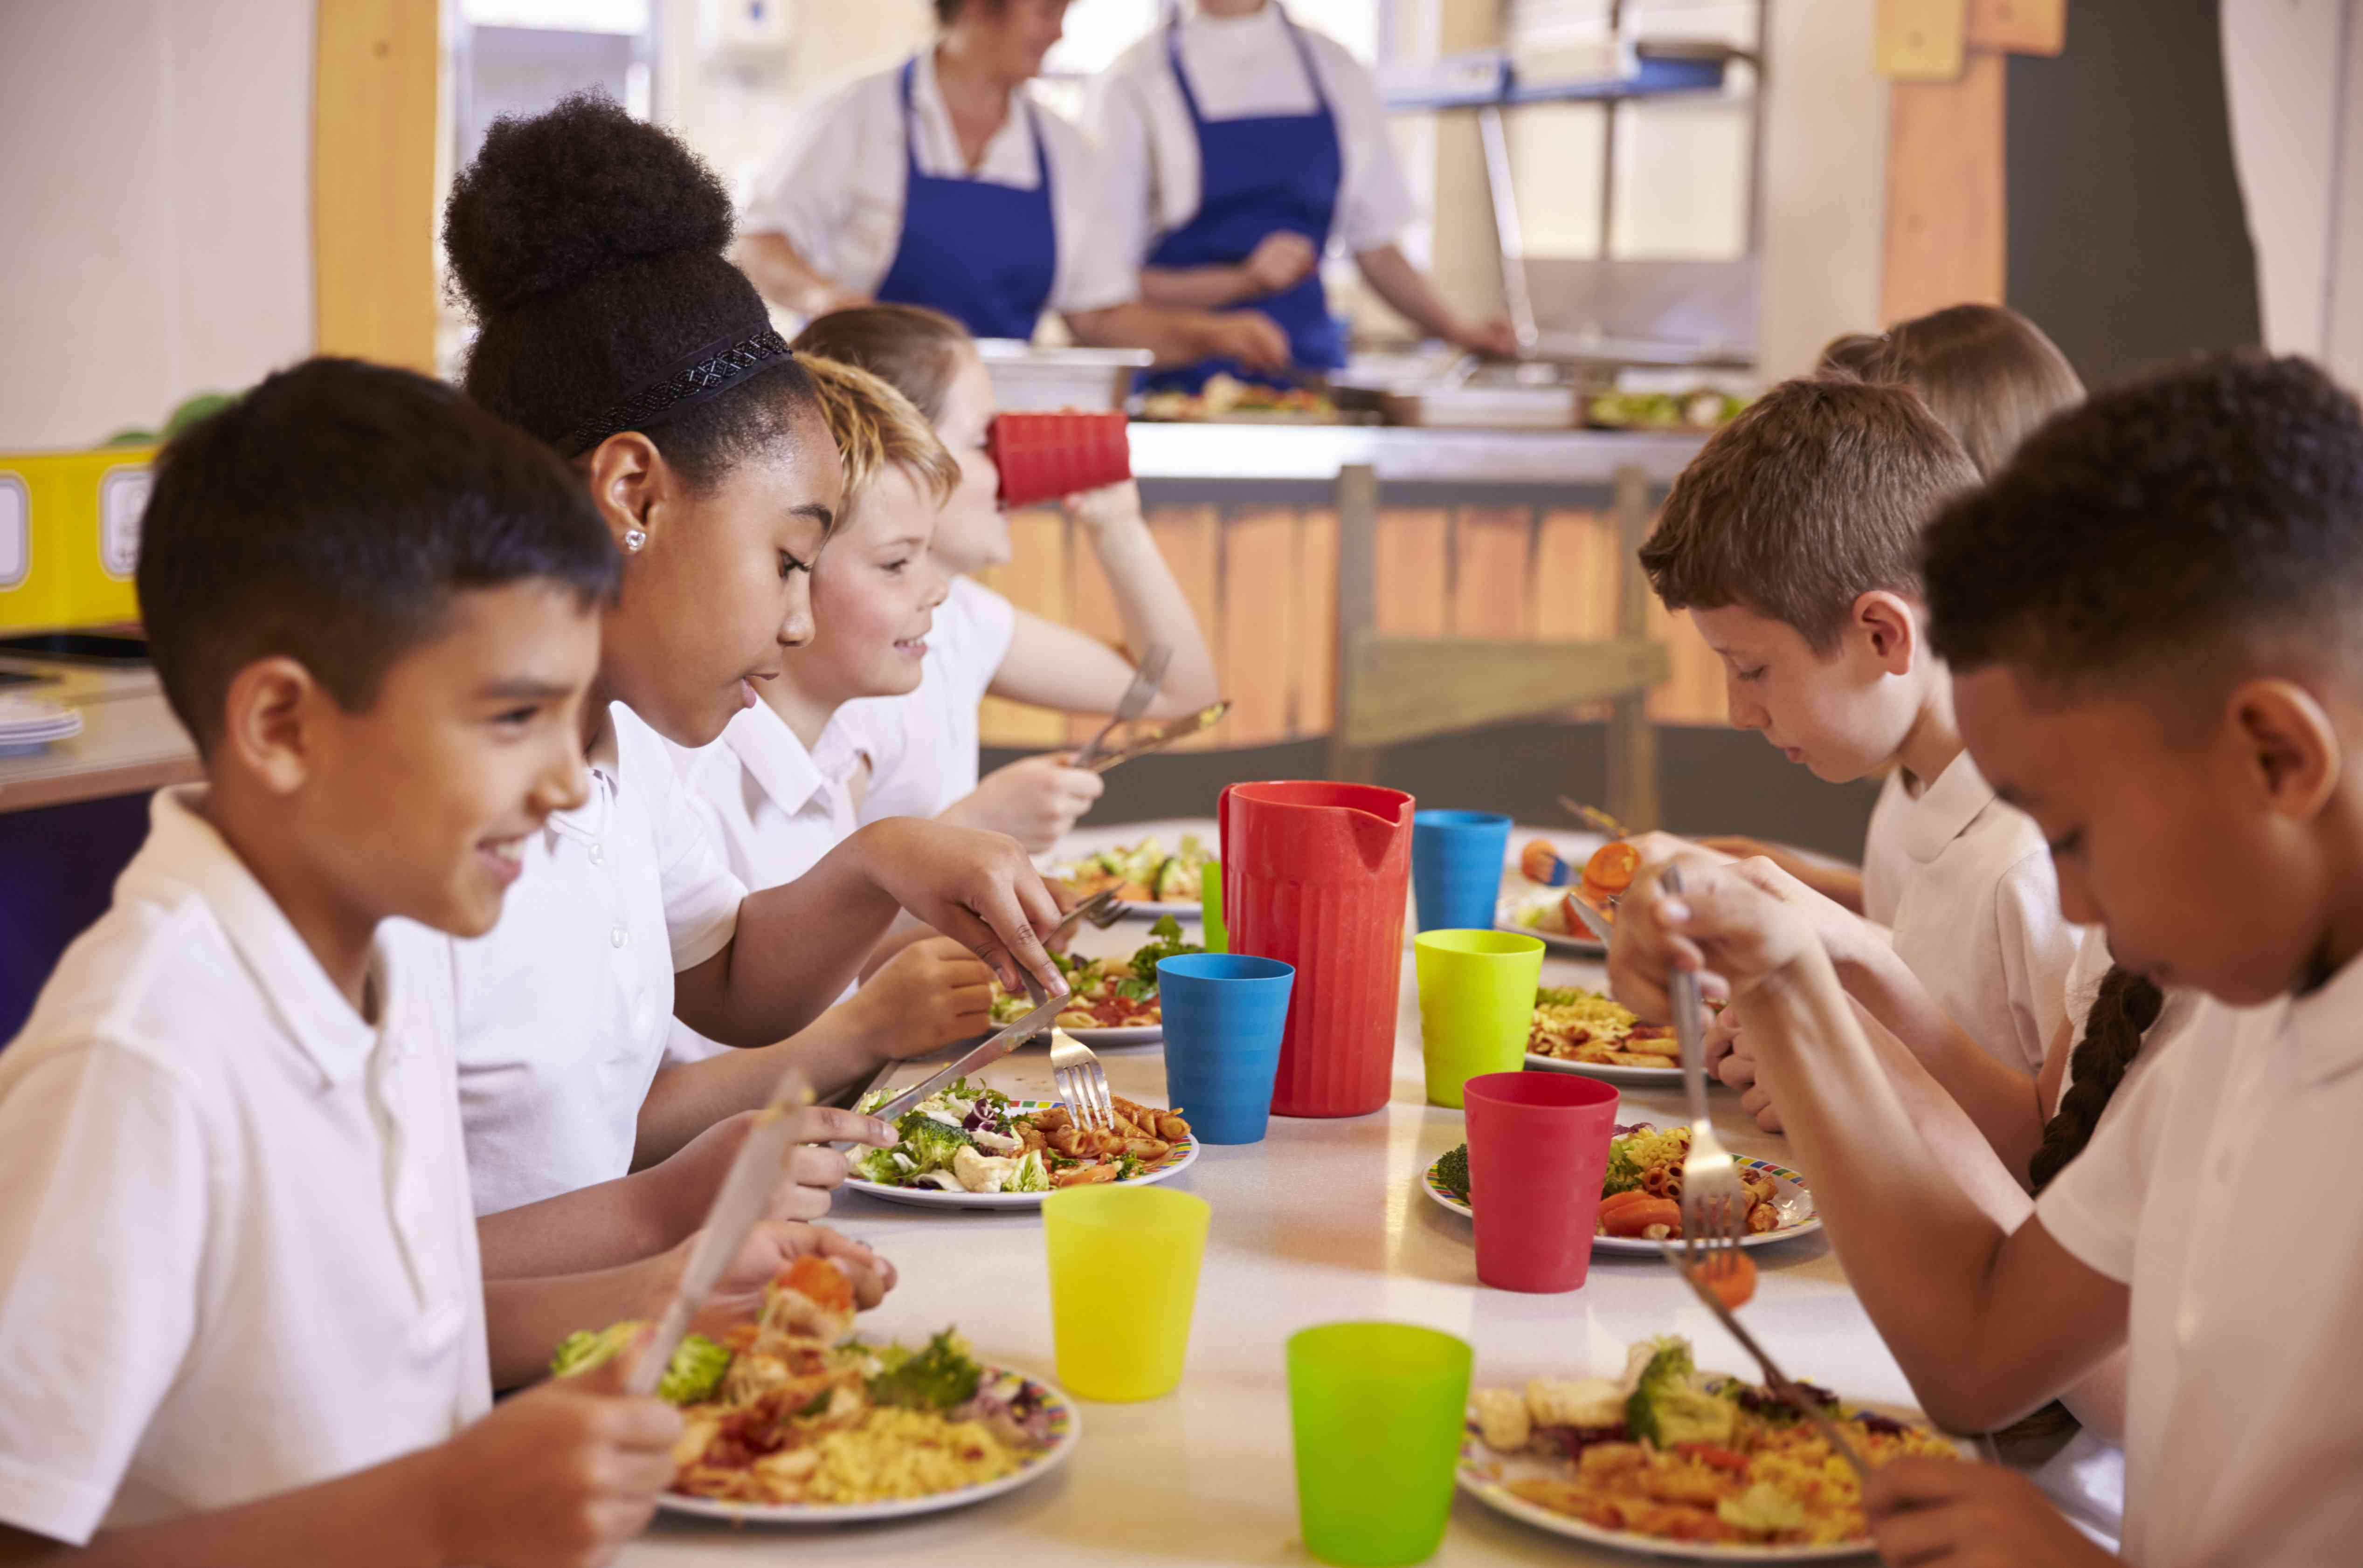 group of kids at table eat school lunch